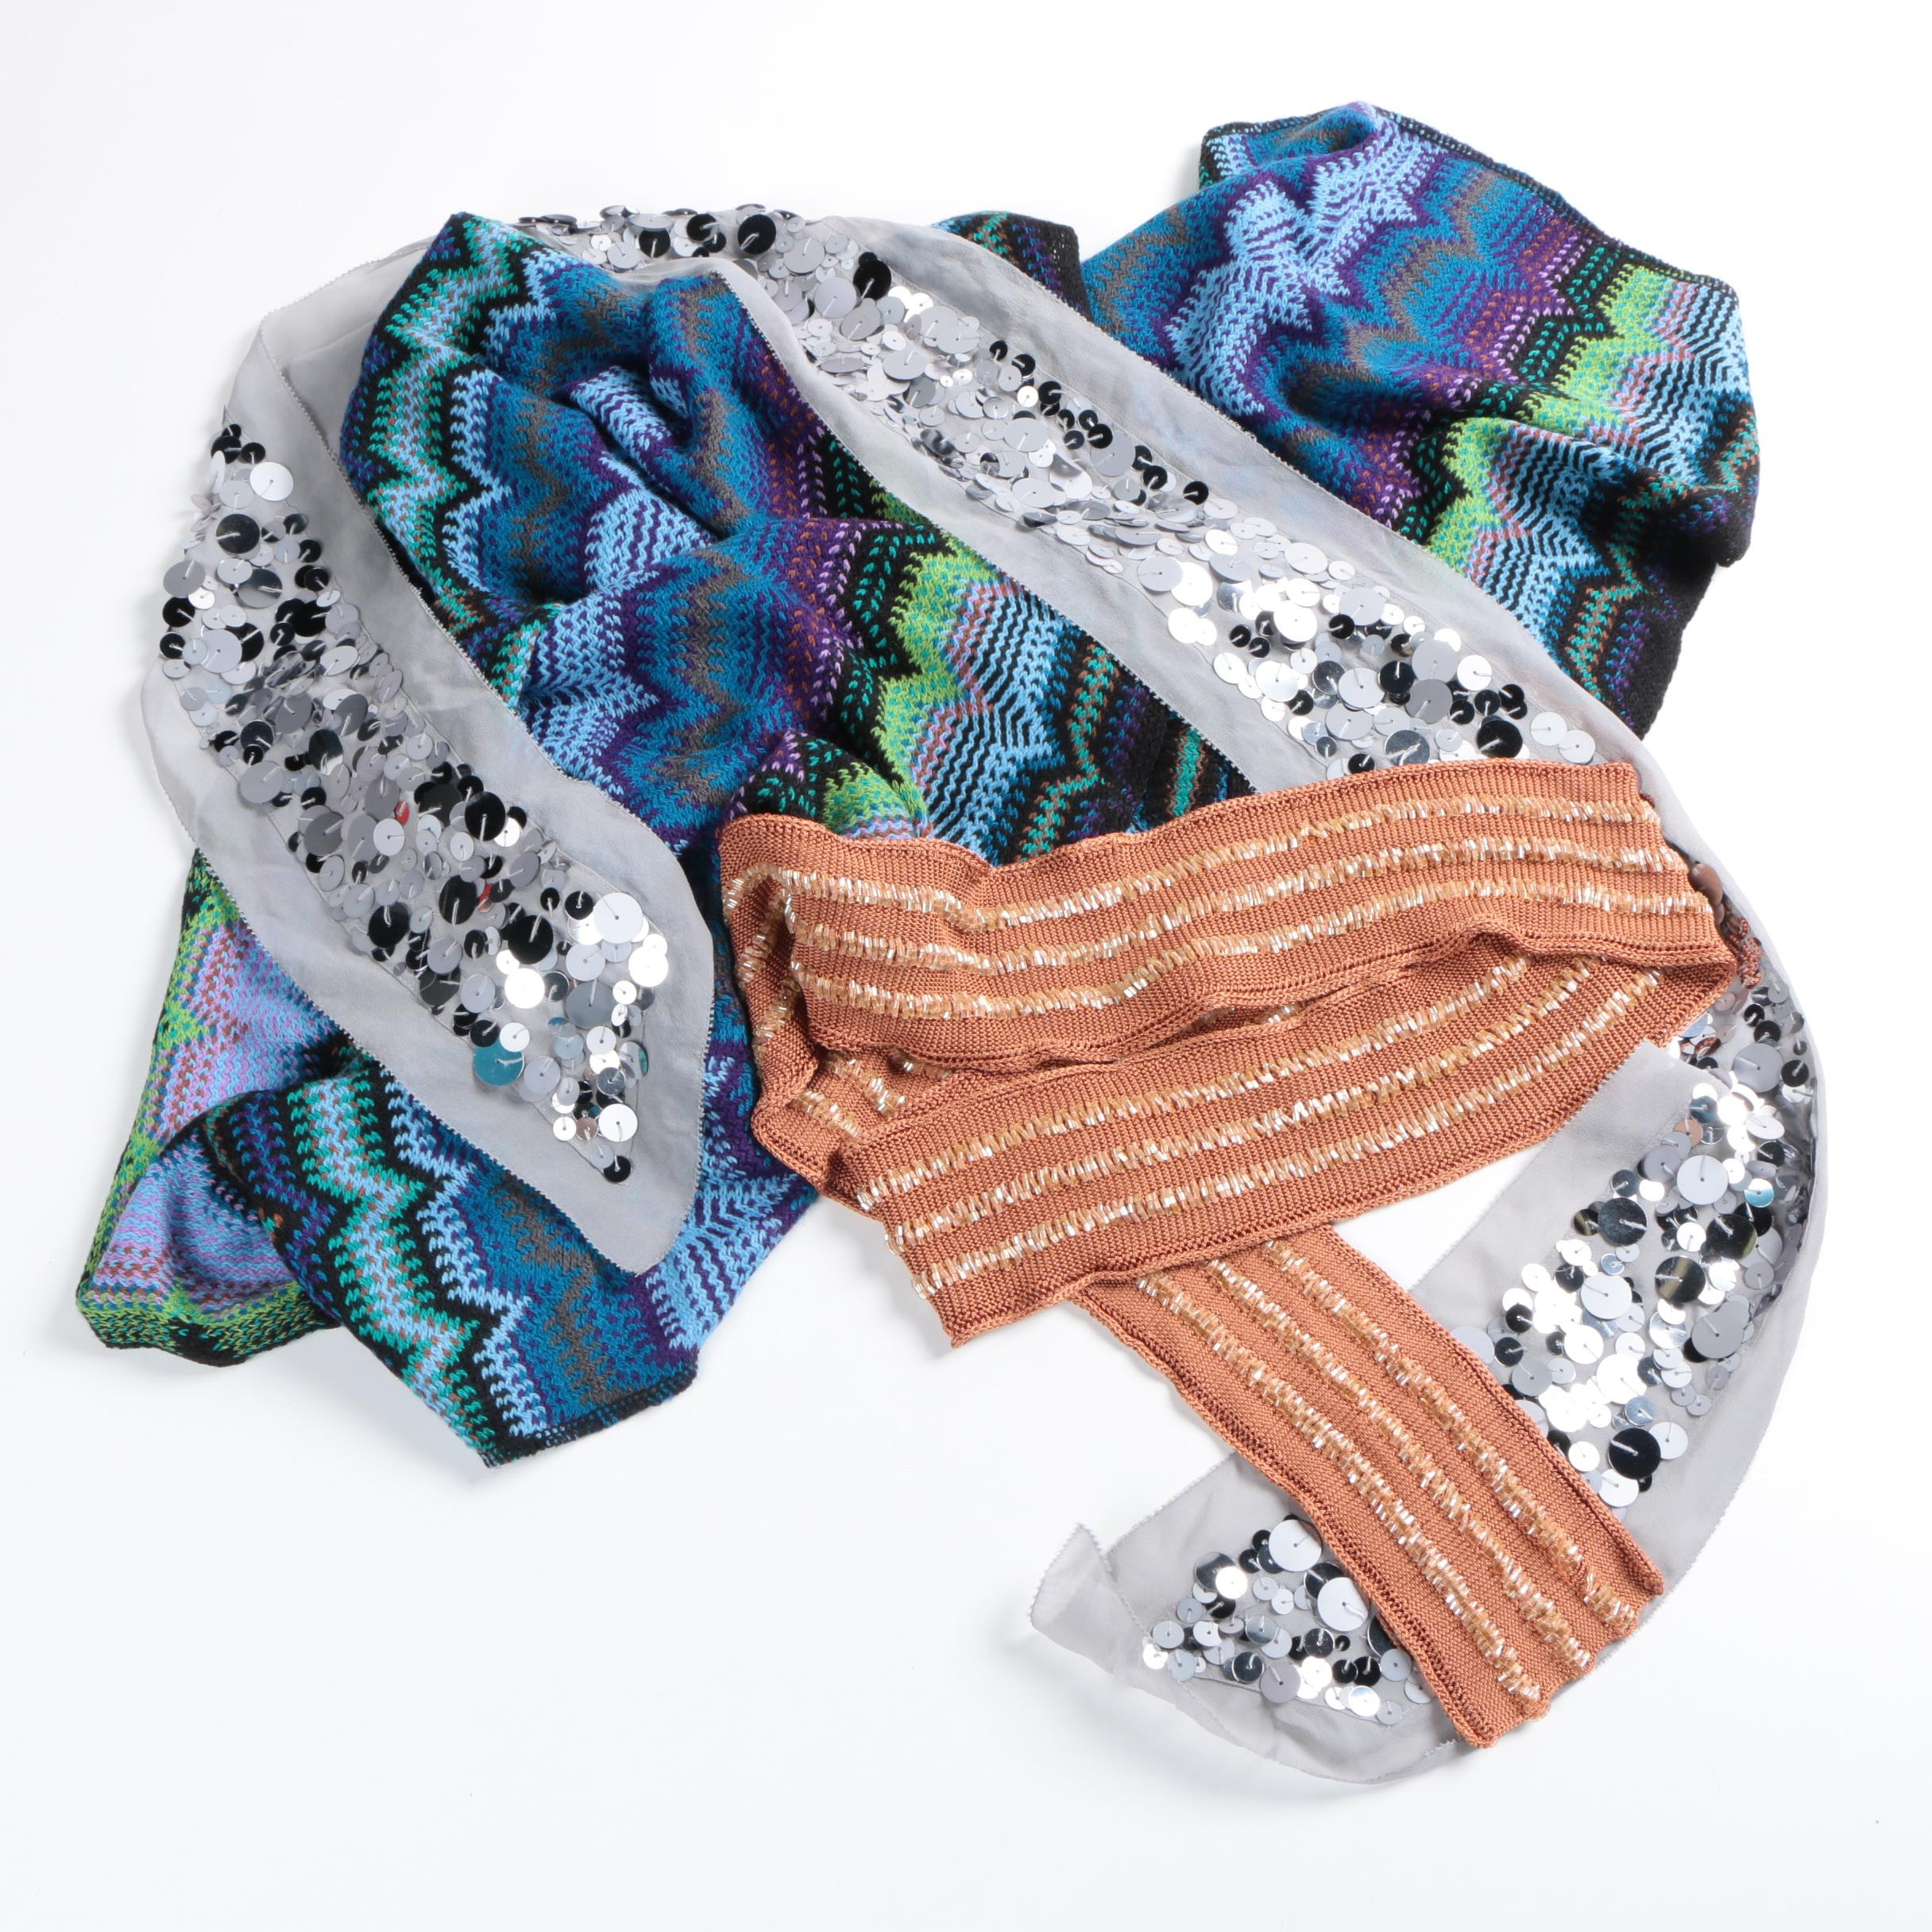 Striped and Embellished Scarves